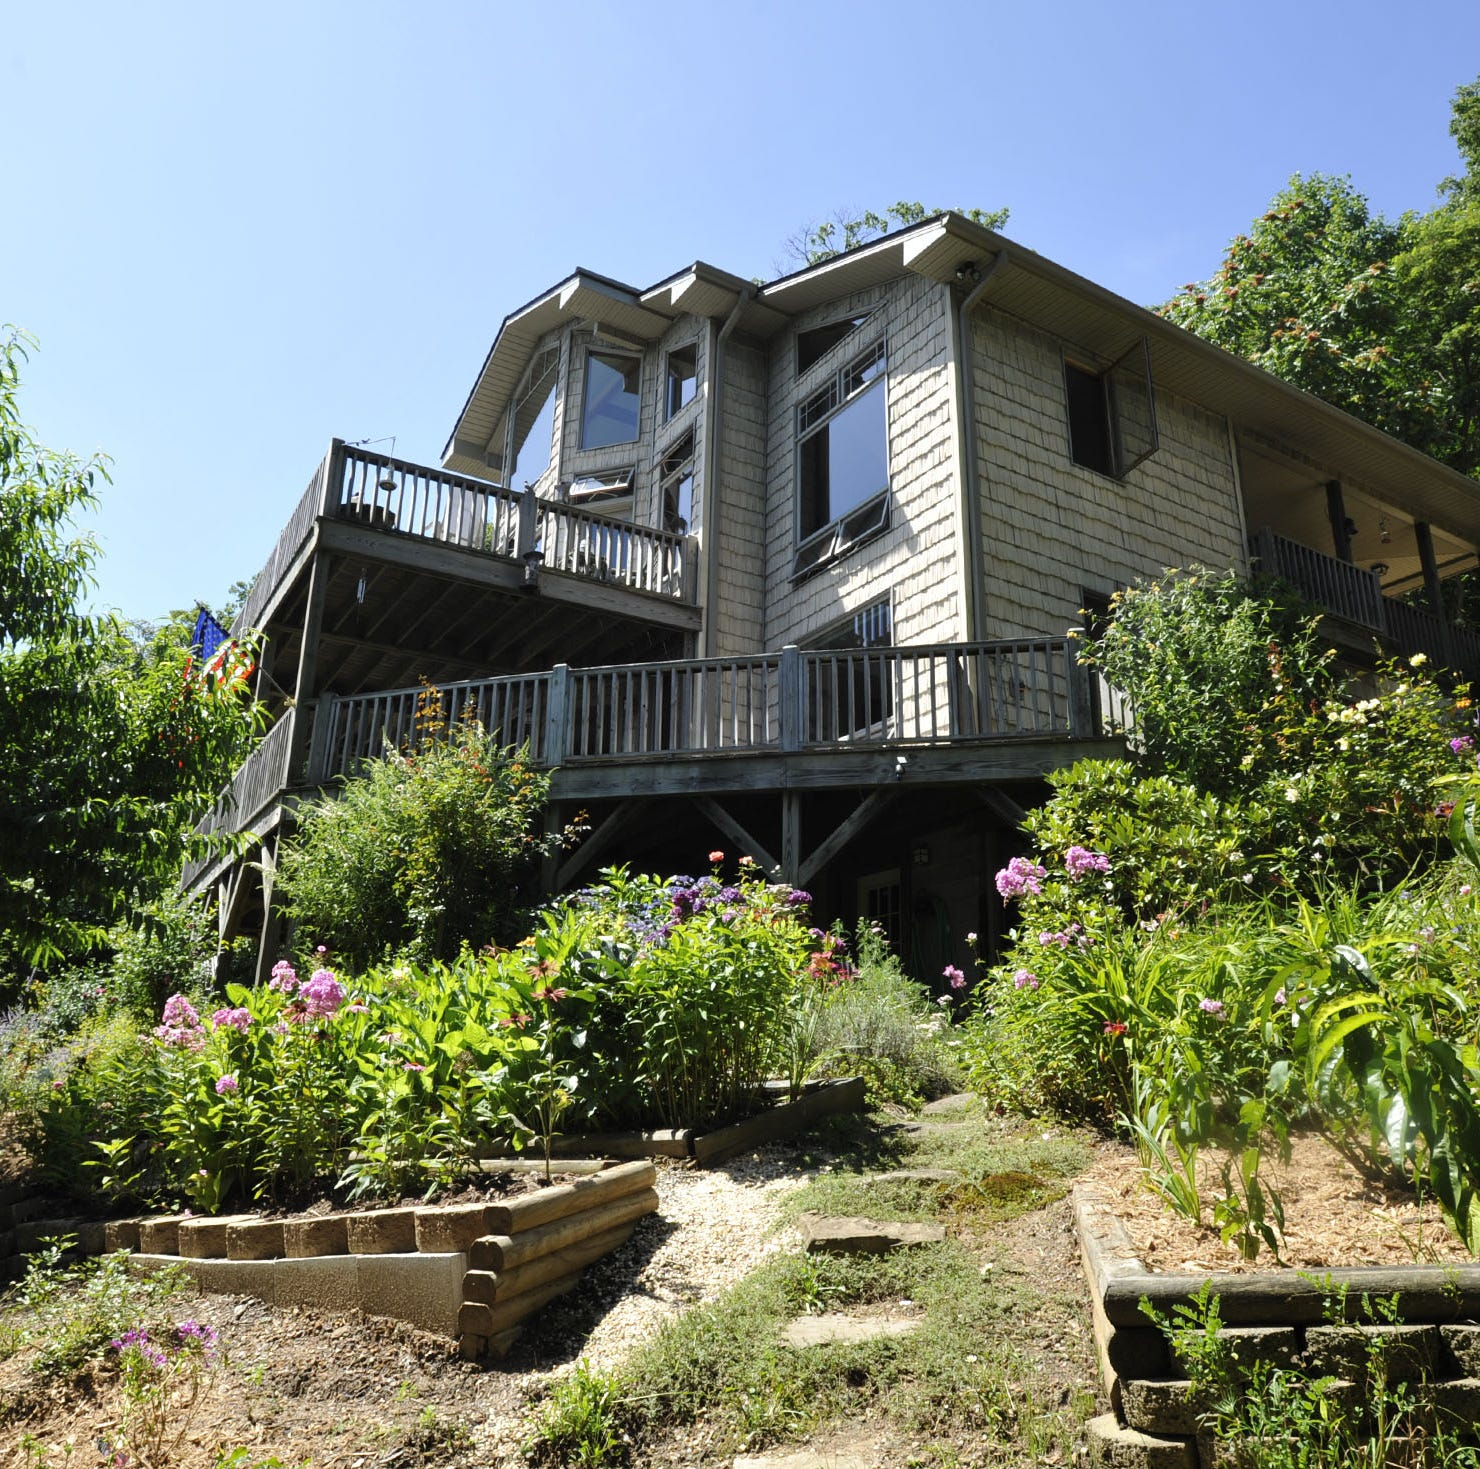 Home of the Week: Not quite a cabin, in Weaverville